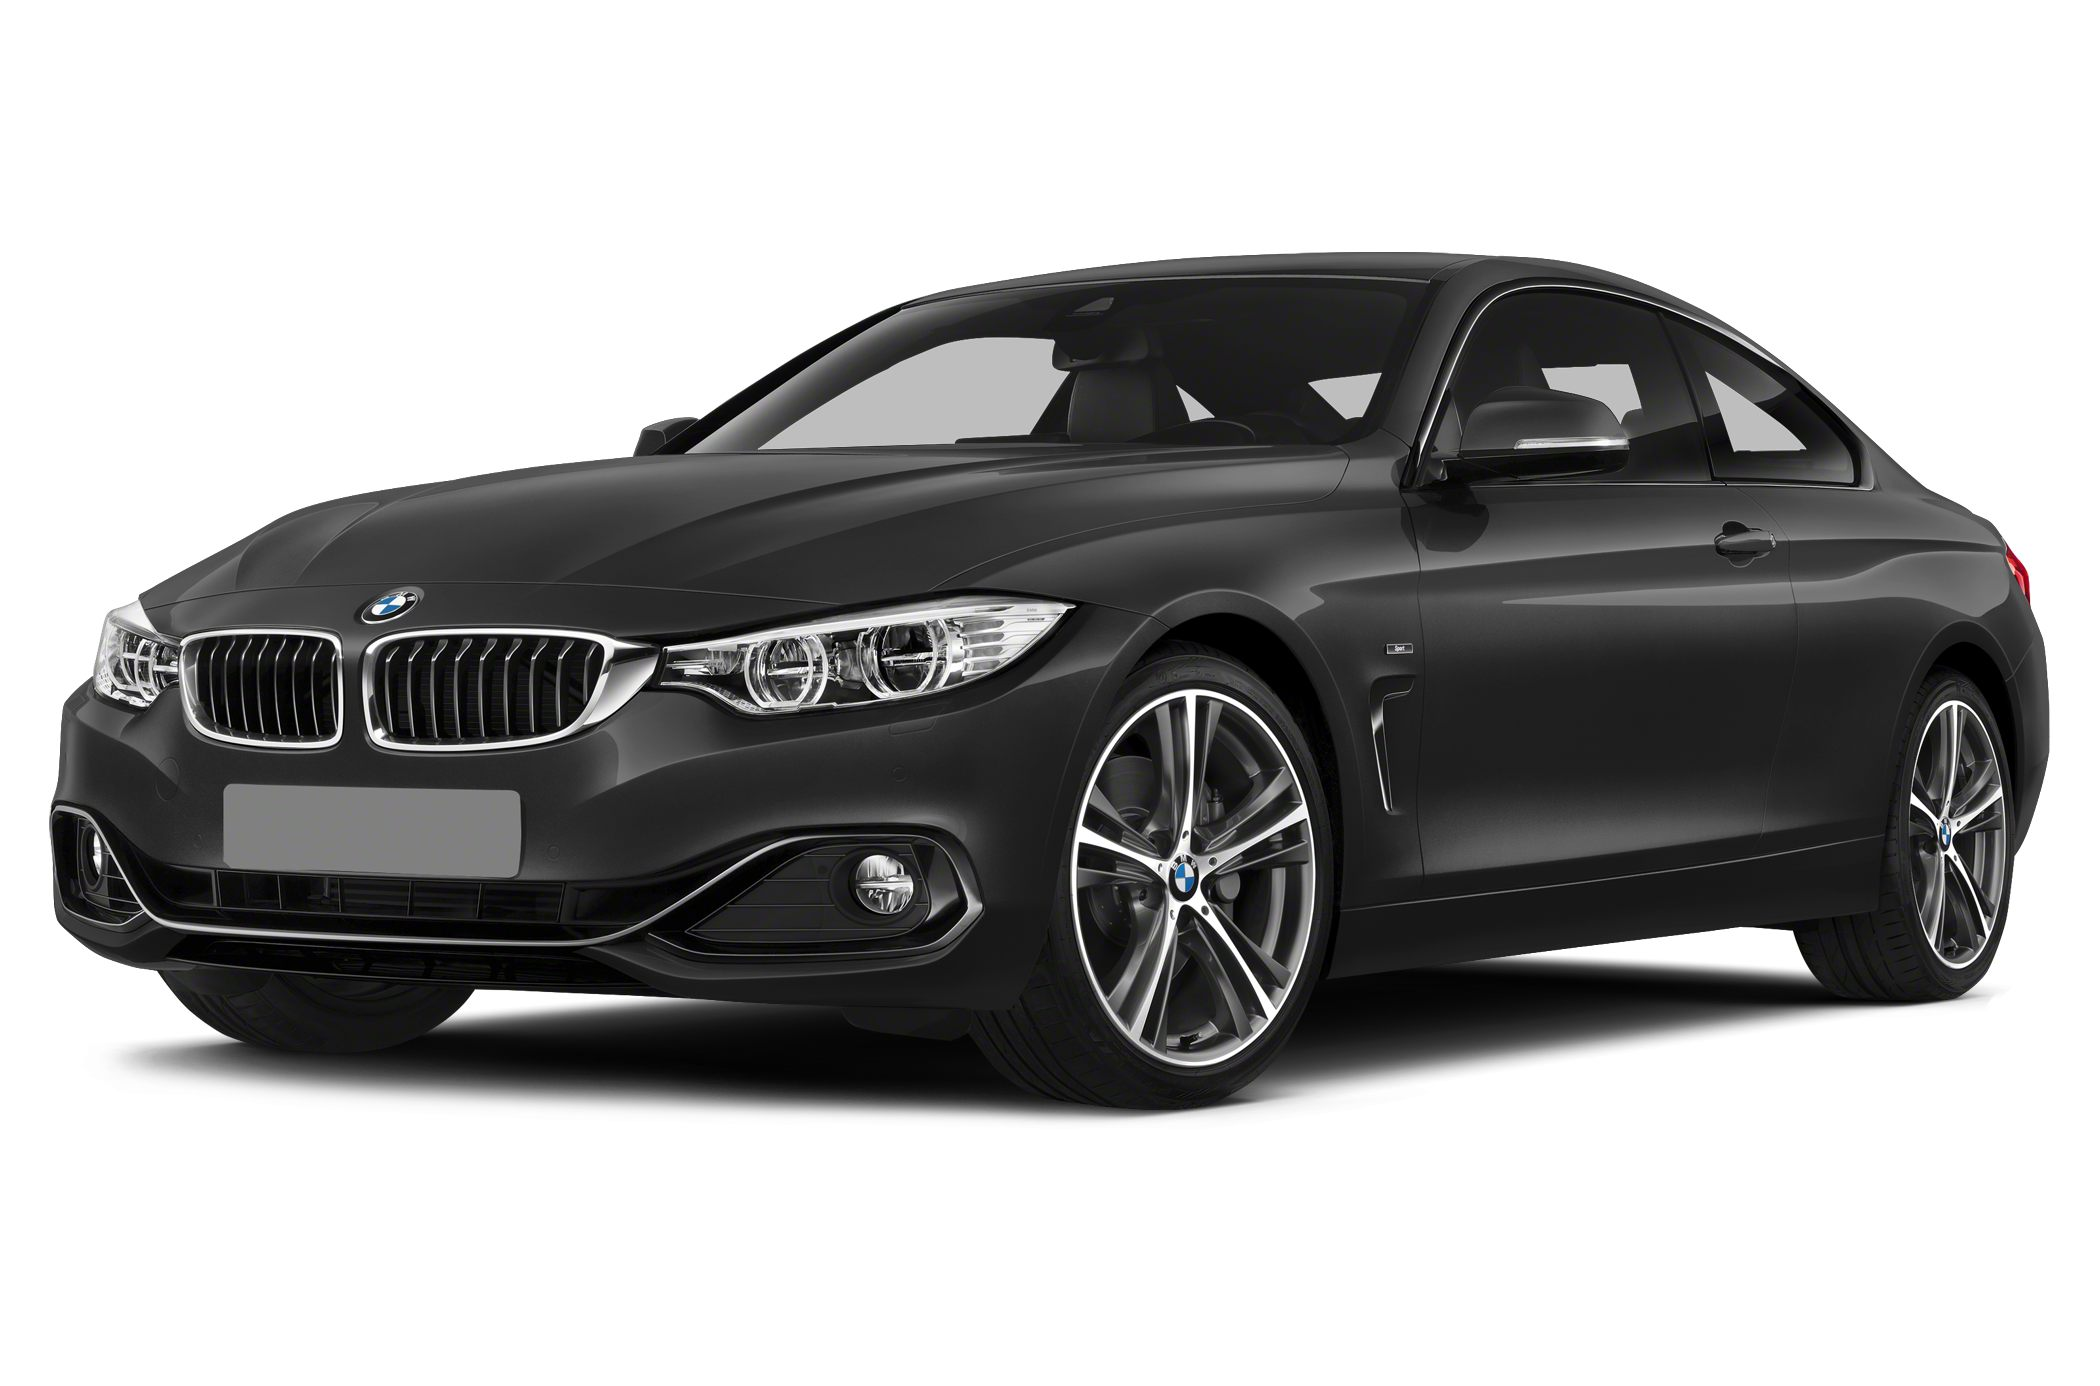 black bmw car price photo - 5